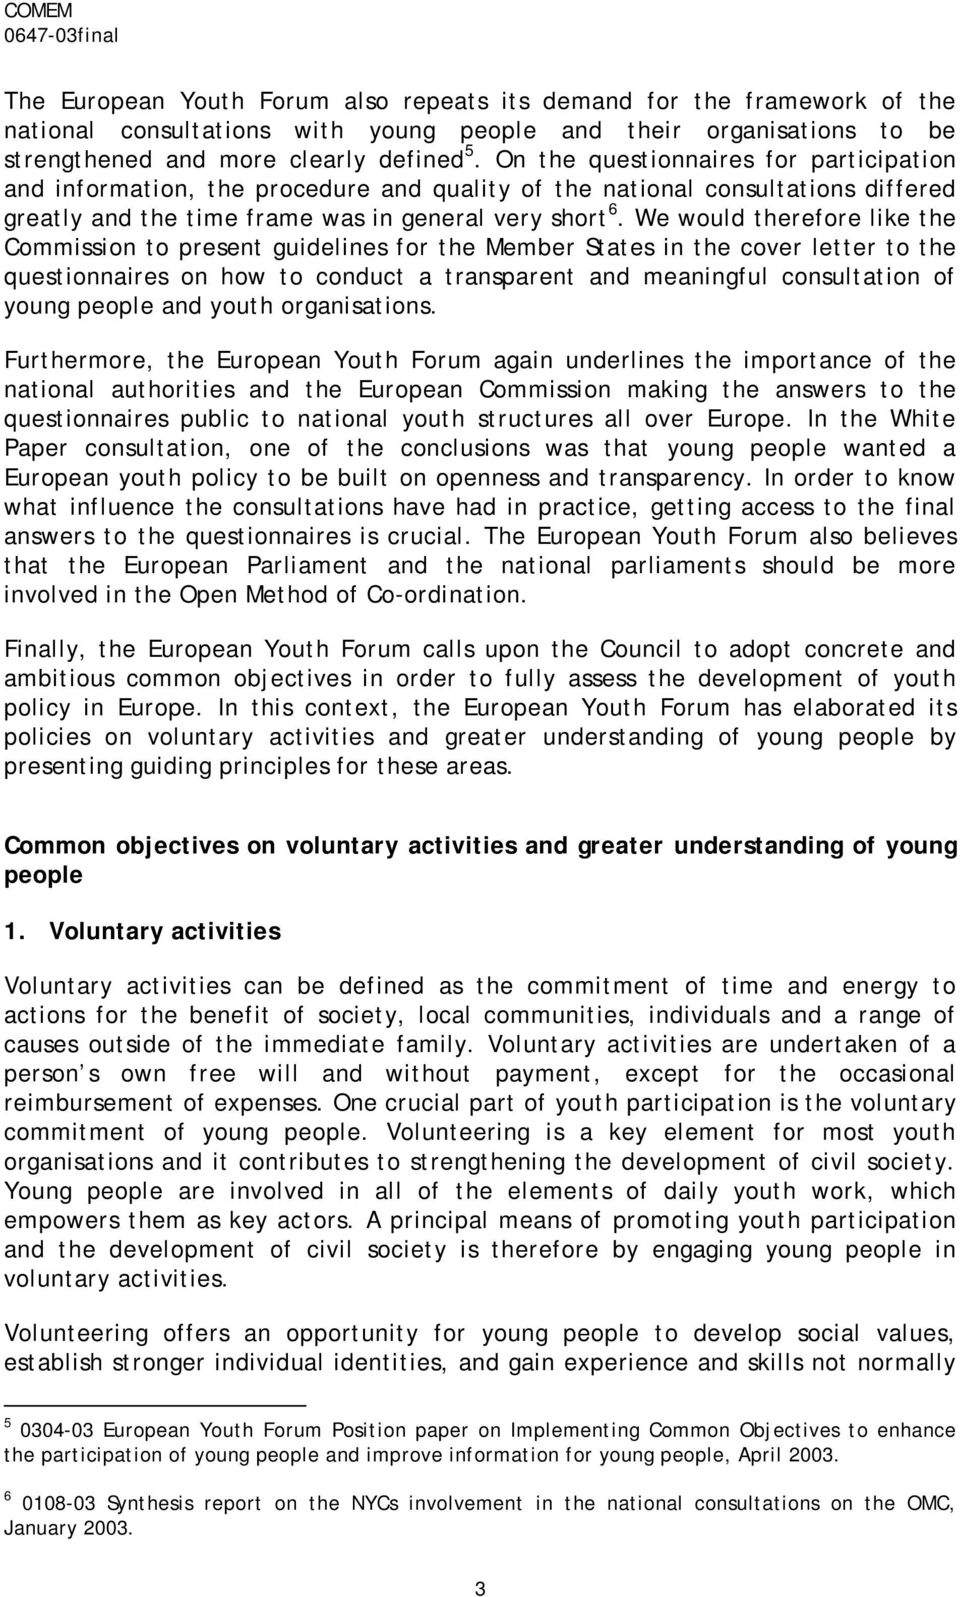 We would therefore like the Commission to present guidelines for the Member States in the cover letter to the questionnaires on how to conduct a transparent and meaningful consultation of young